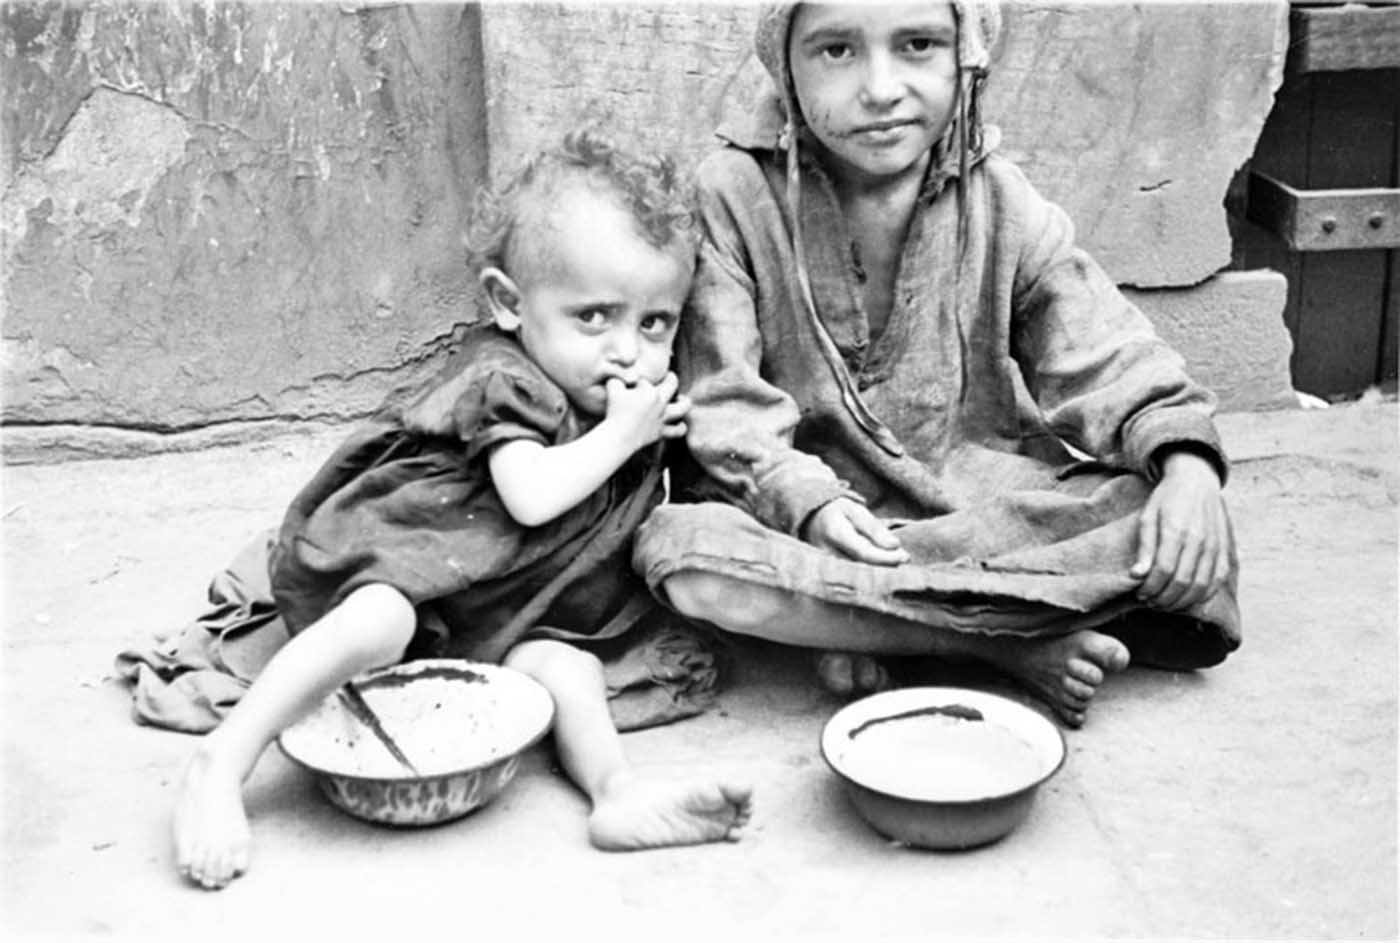 Two children begging for food on the street.